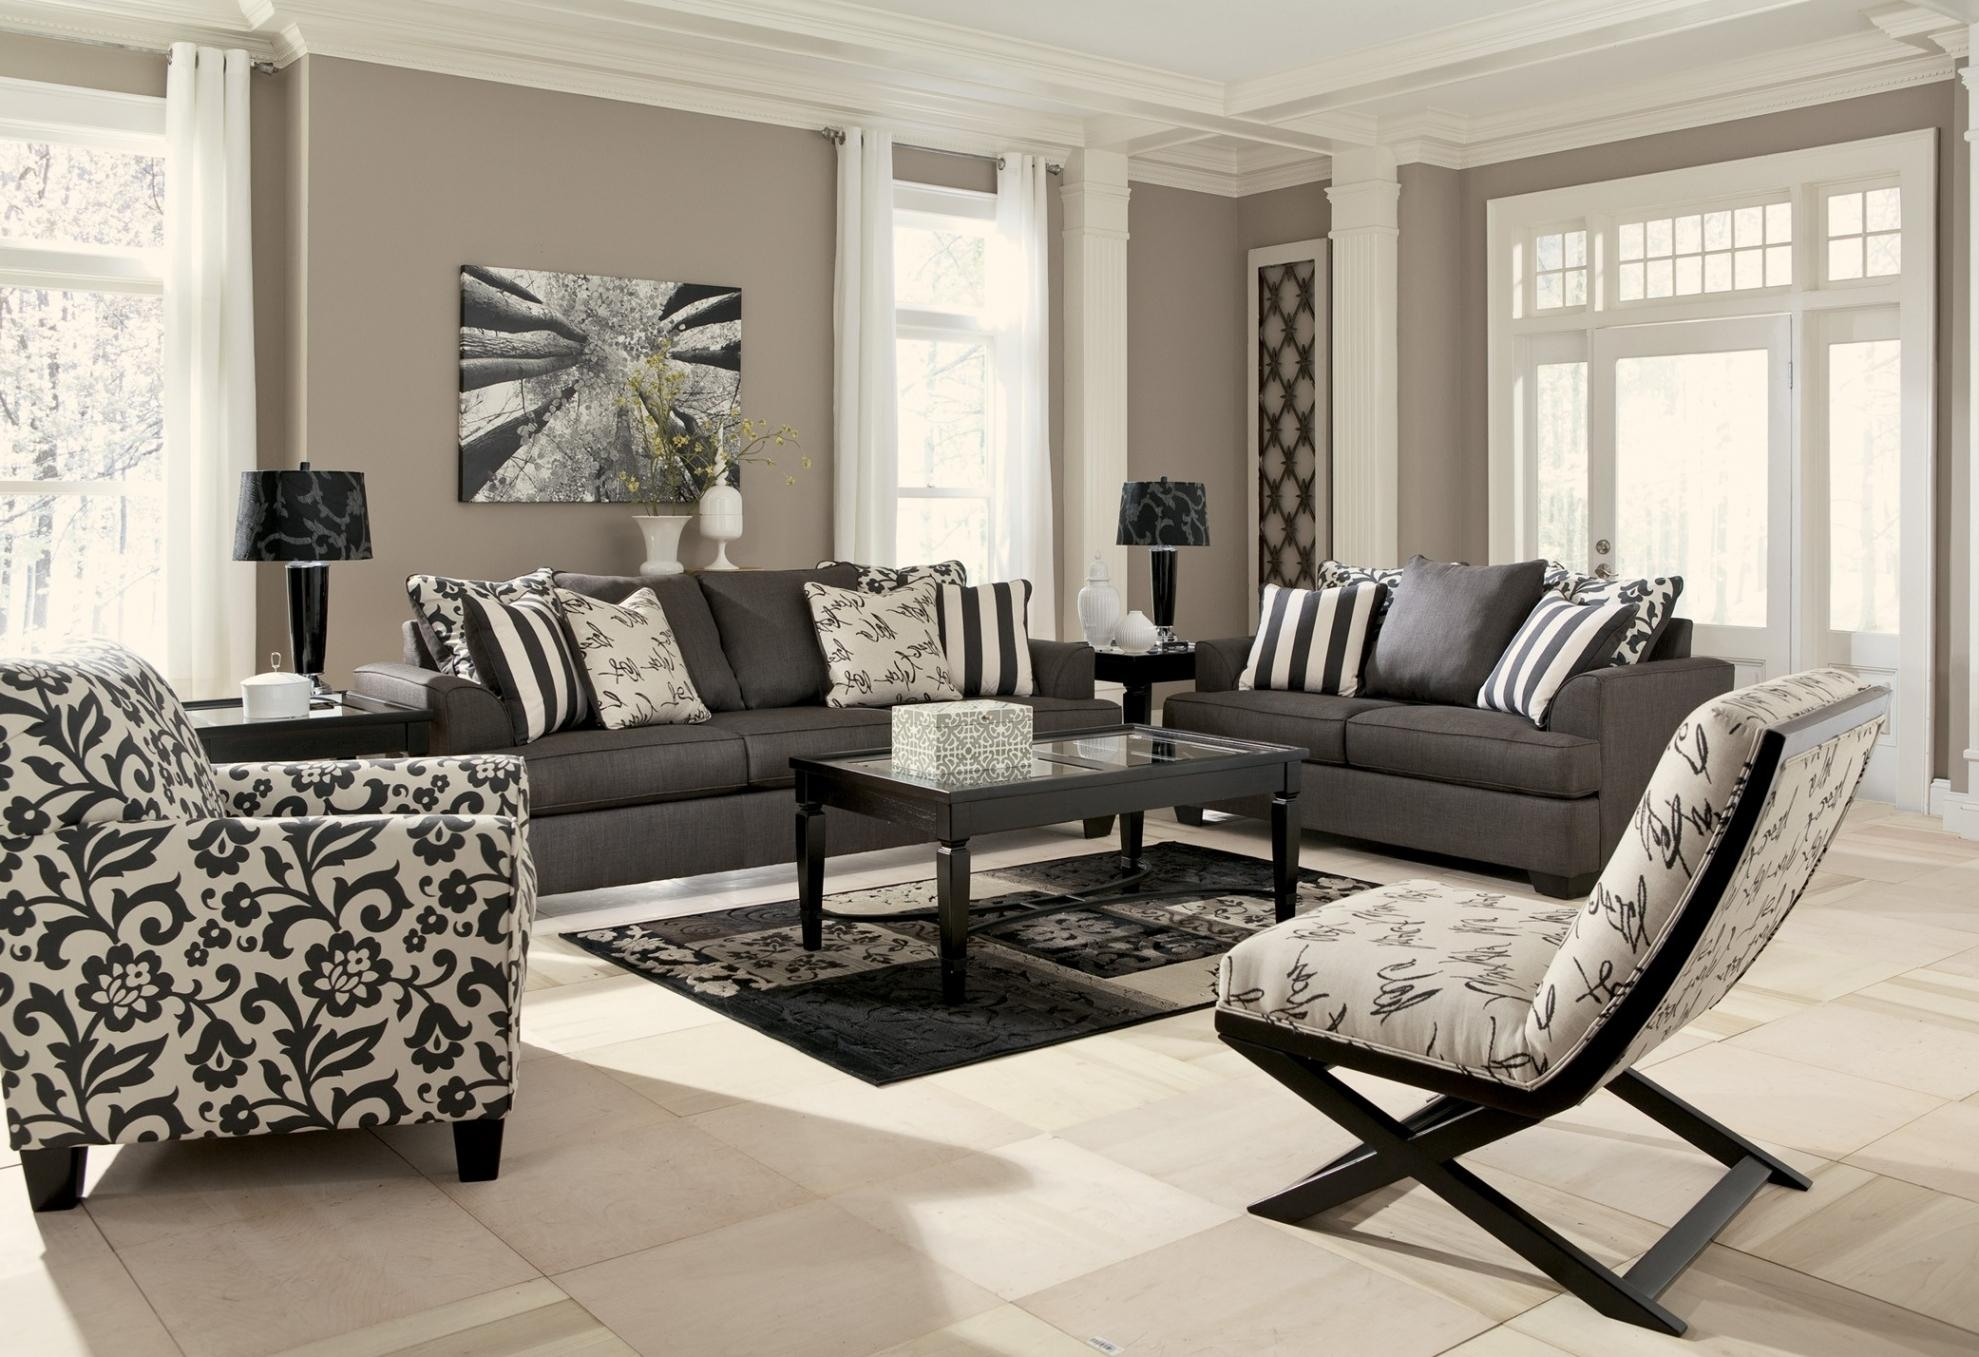 American Drew Jessica Mcclintock Home – The Boutique Collection With Regard To Bradington Truffle (Image 1 of 20)